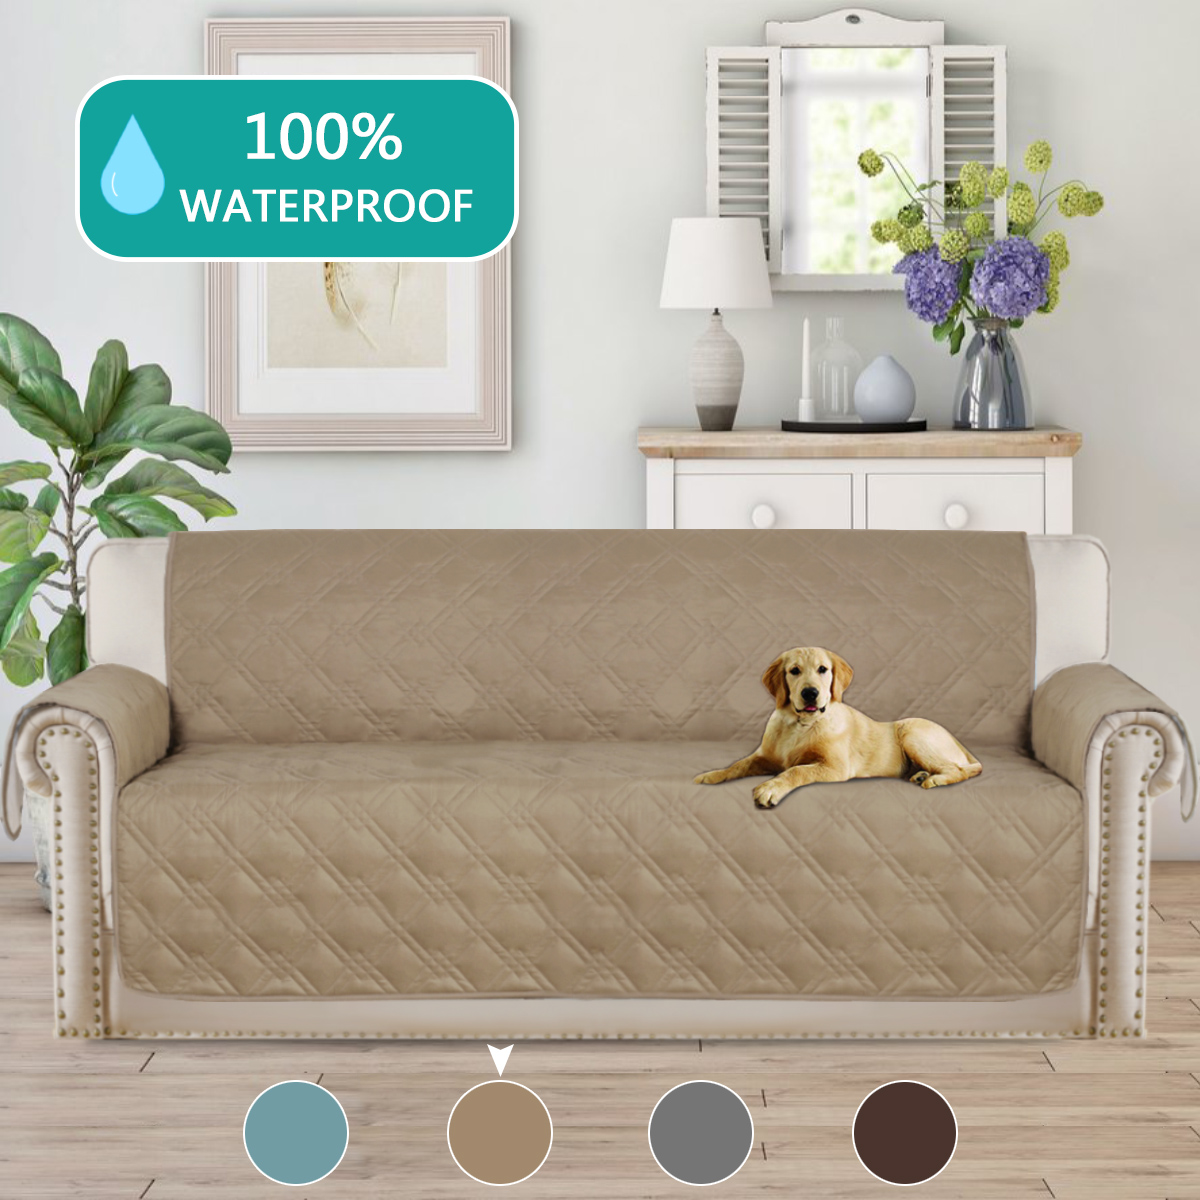 100% Waterproof Sofa Slipcovers Super Soft Furniture Protector Features To  Prevent Stains / Protect From Pets, Spills, Wear And Tear(Oversize Sofa ...